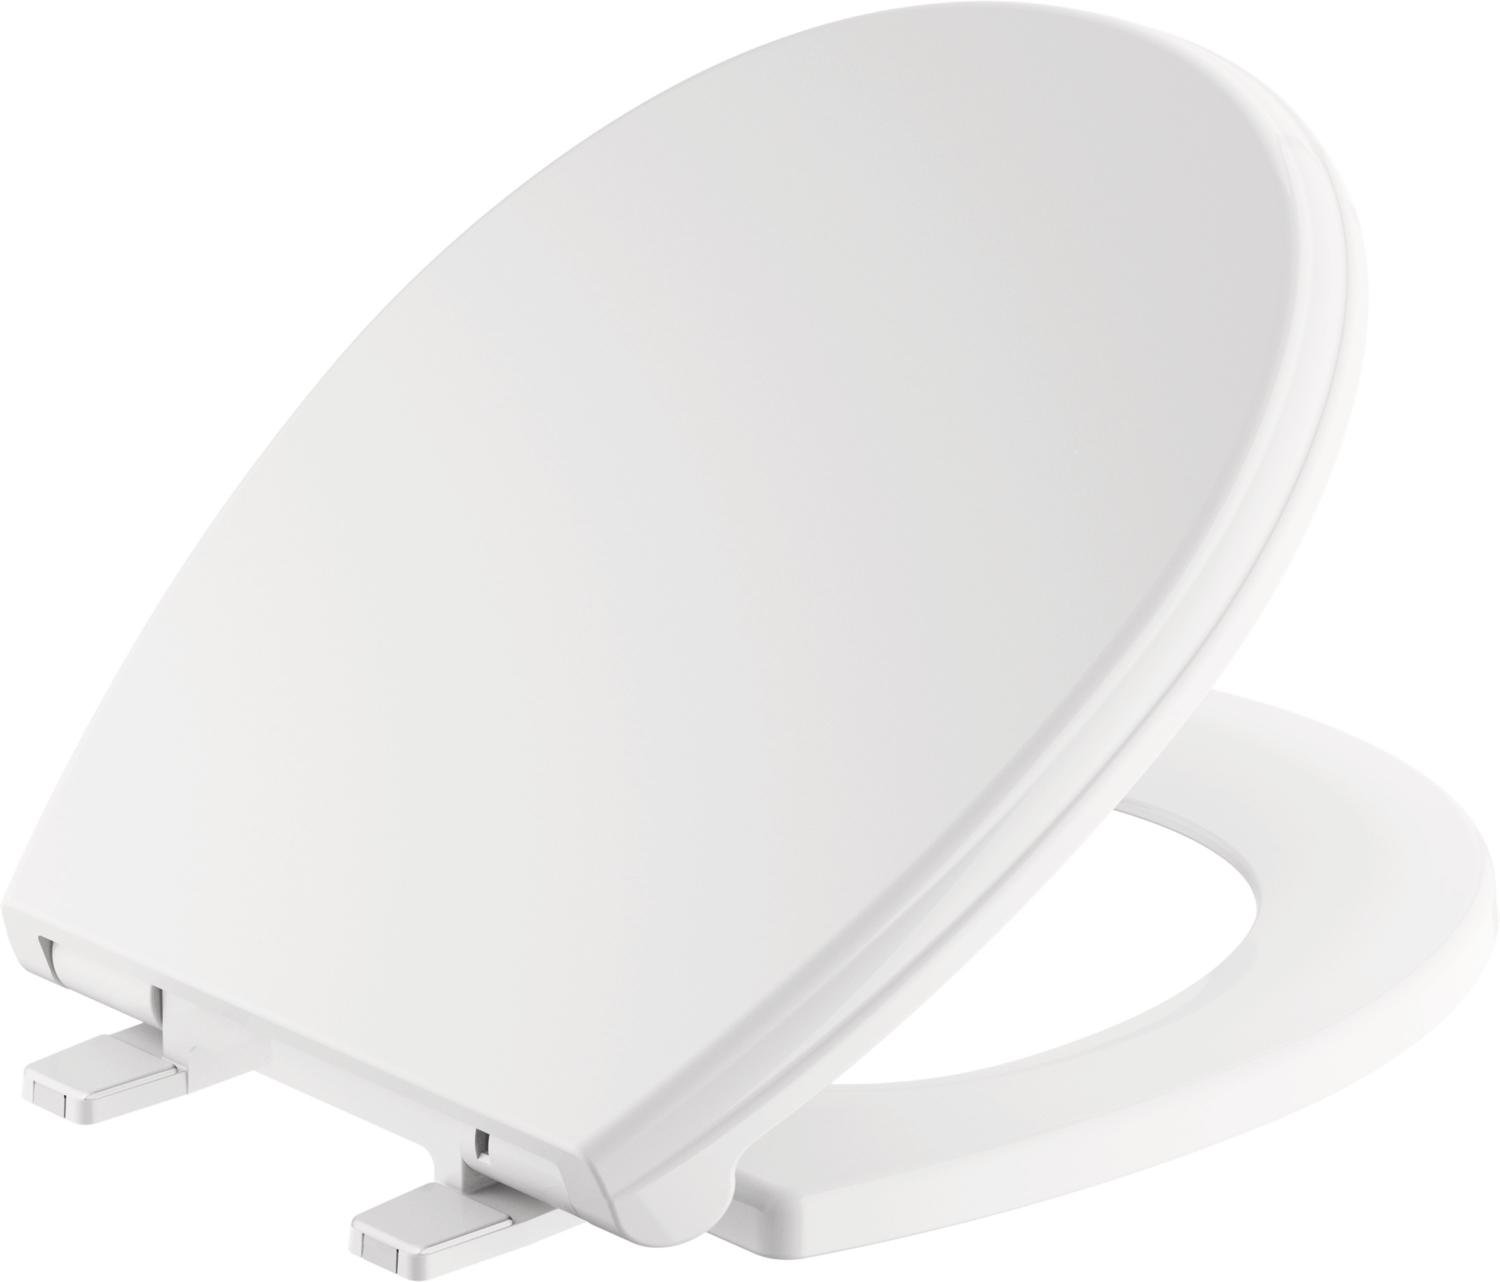 Delta Faucet 801901-WH Wycliffe Round Front Slow-Close Toilet Seat with Non-slip Seat Bumpers, White